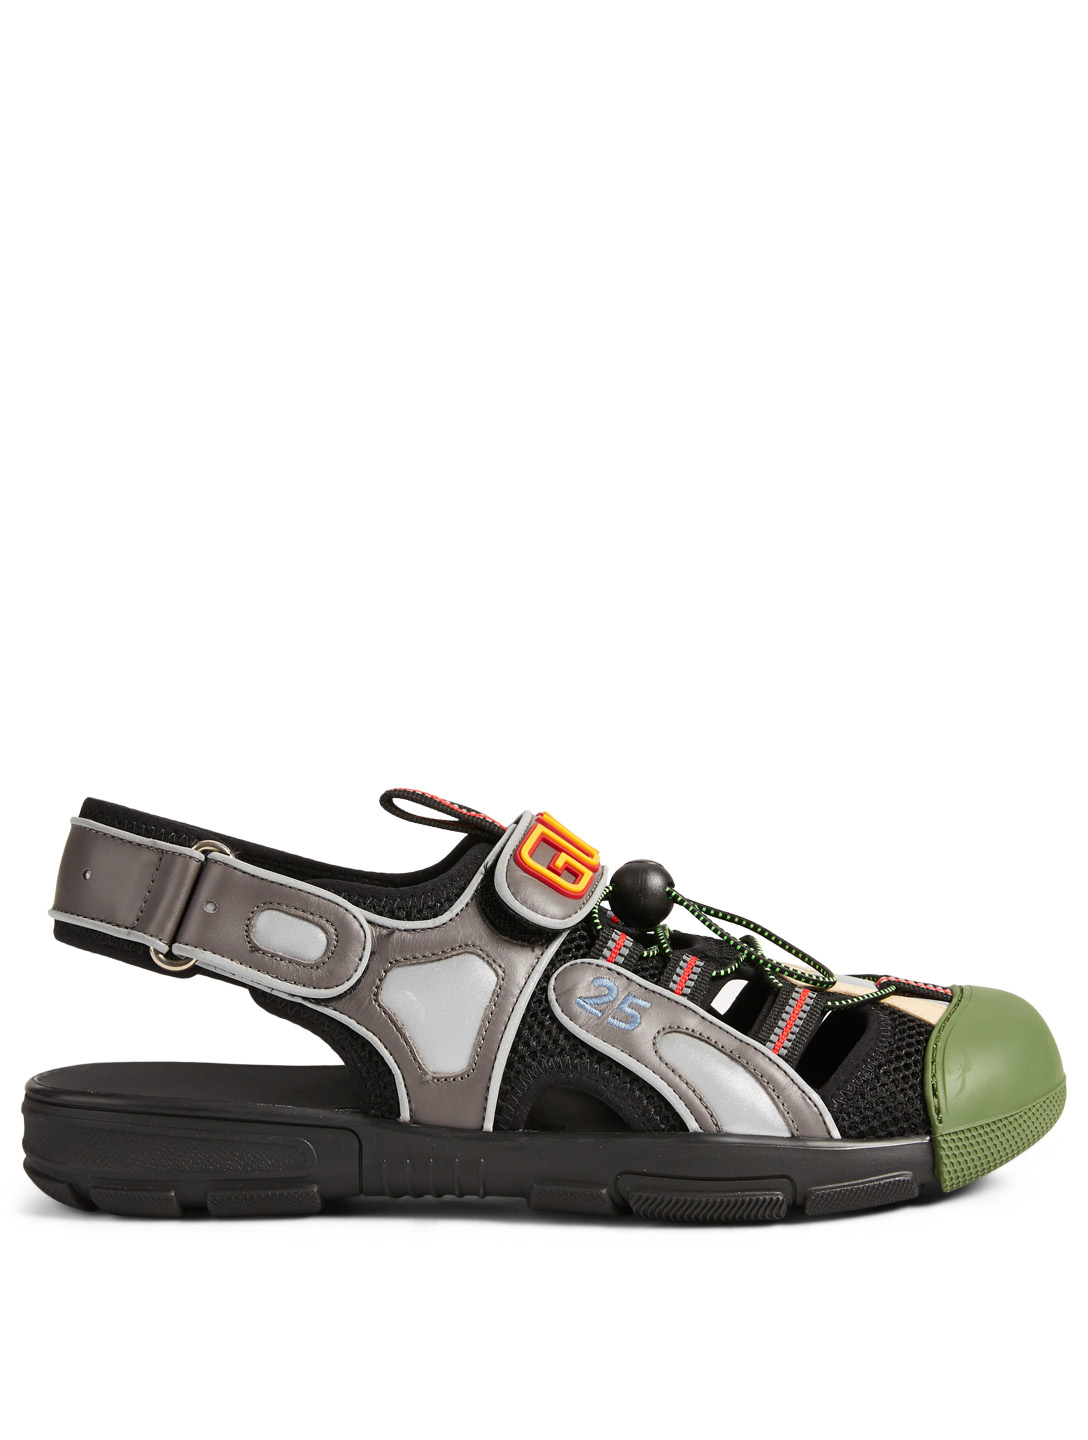 1266462c33da GUCCI Leather And Mesh Sandals Men s Multi ...